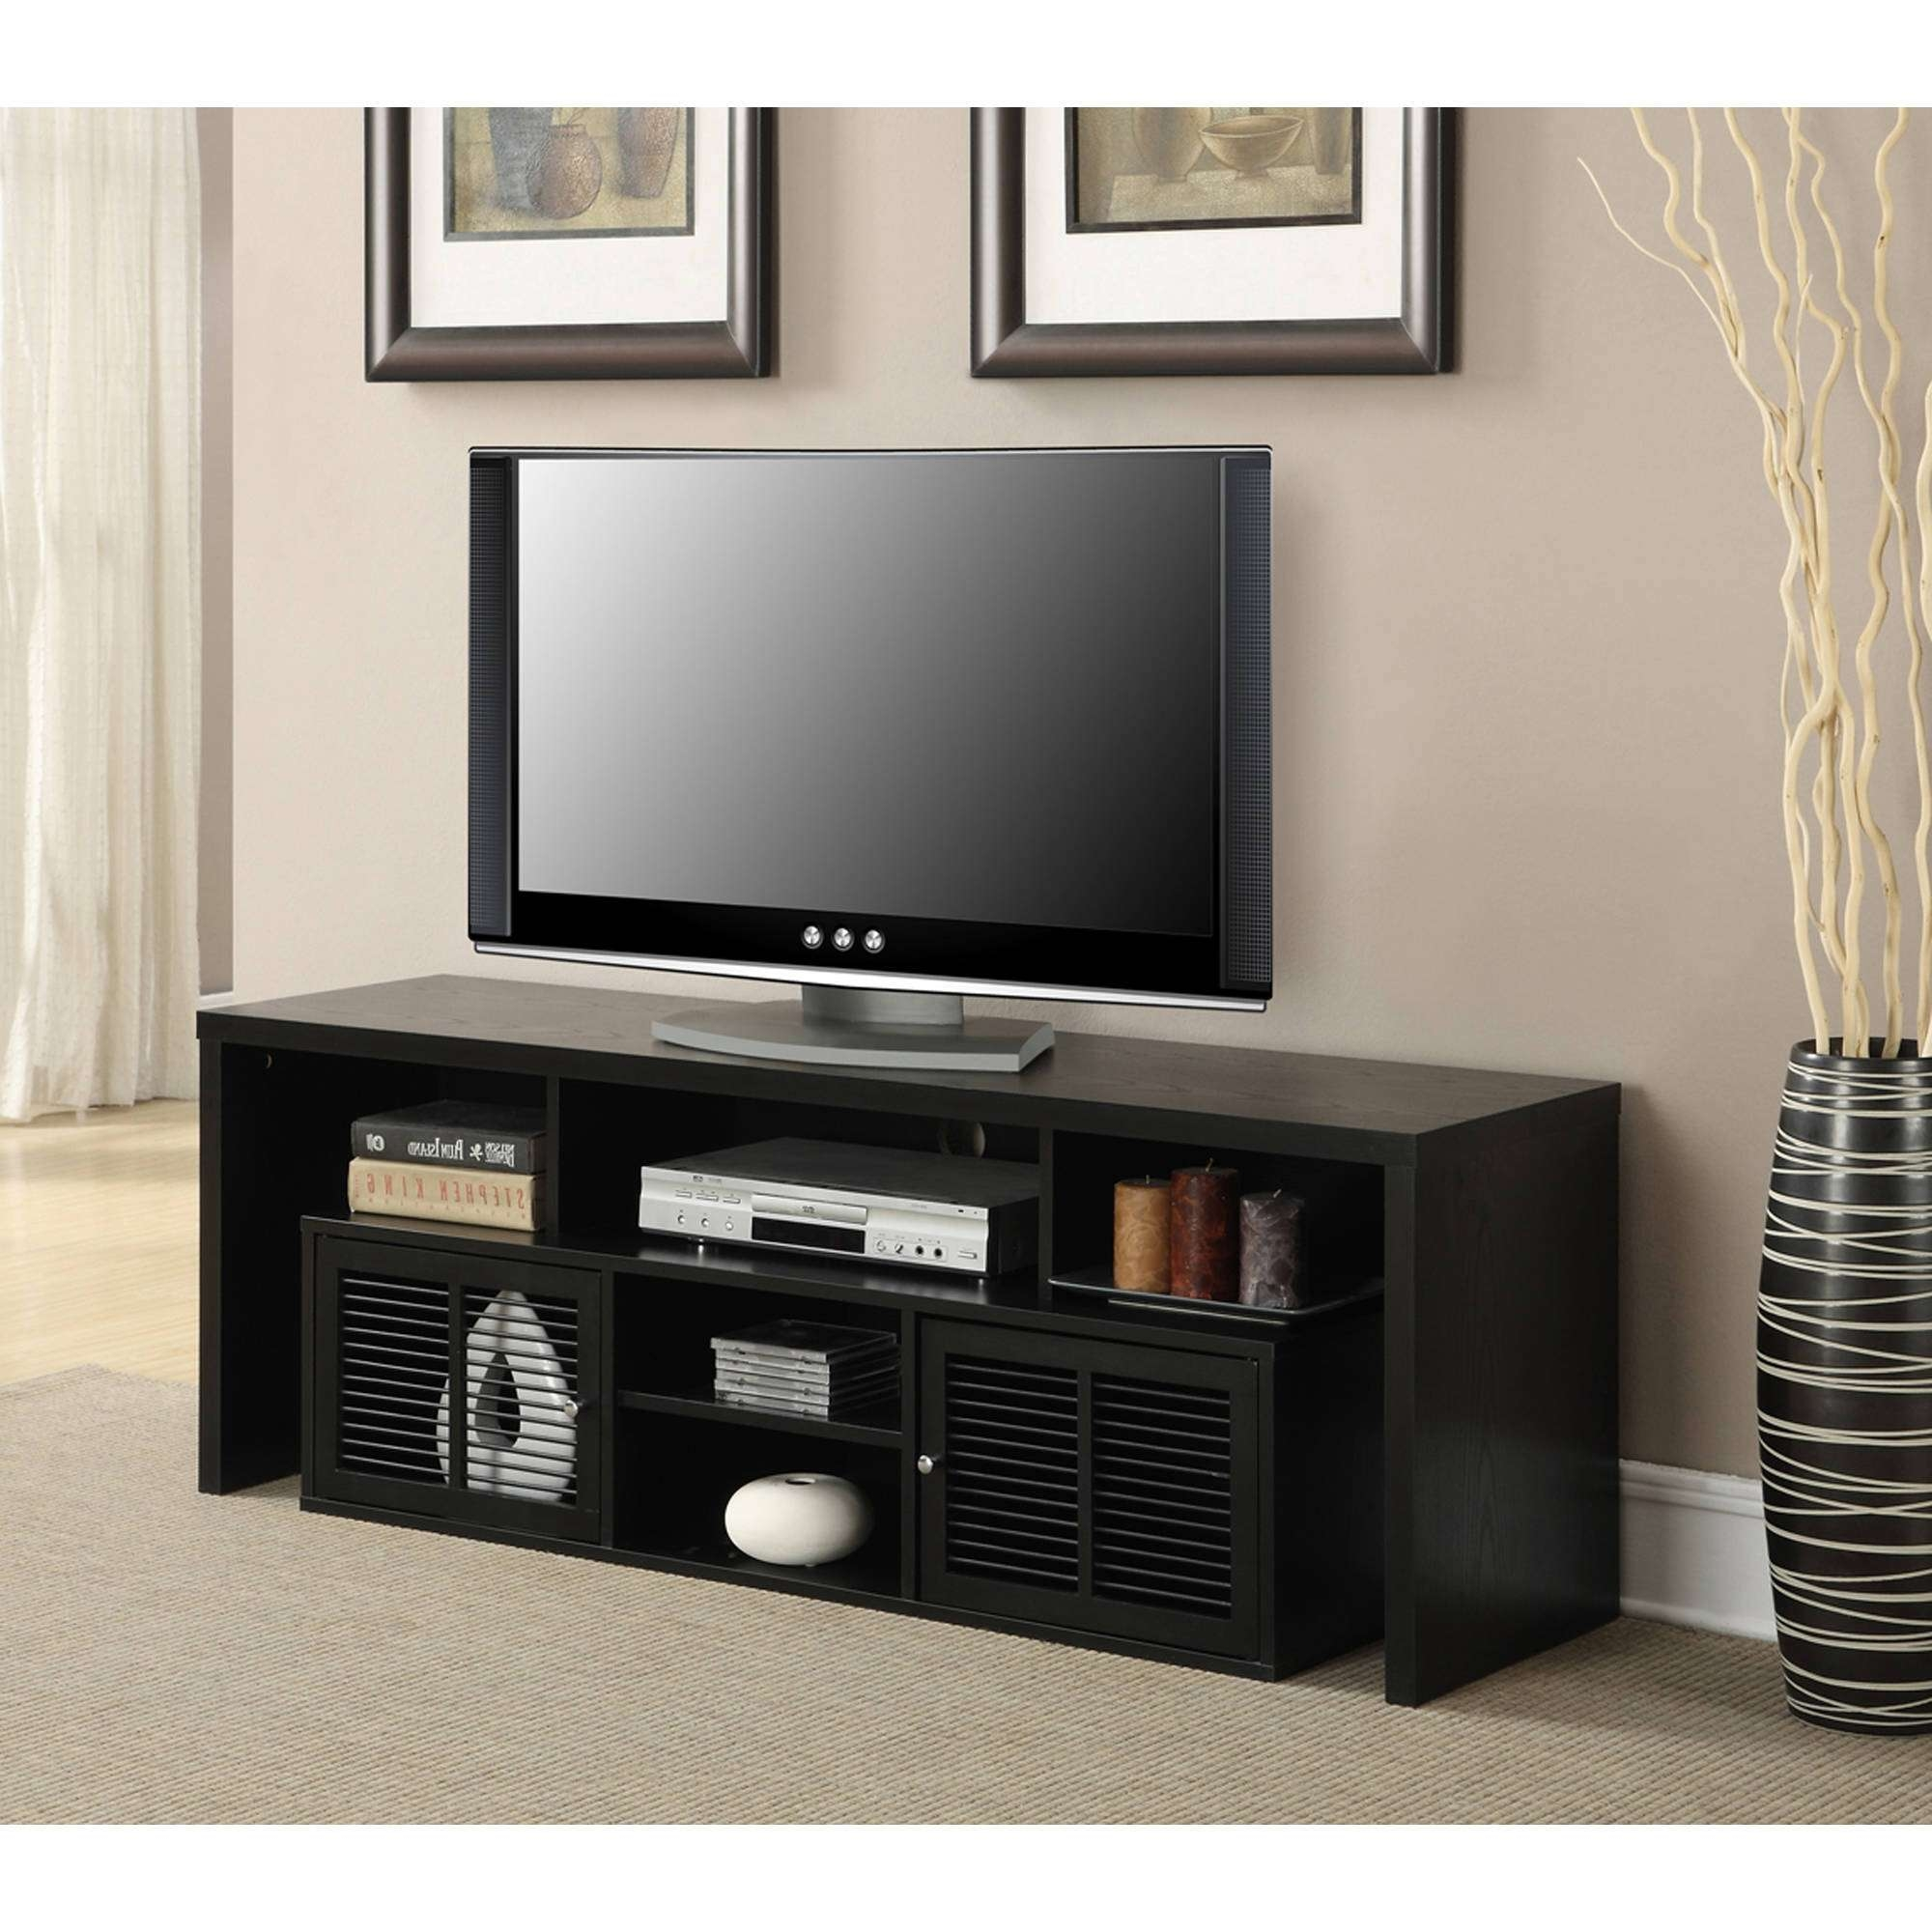 Tv : Home Loft Concept Tv Stands Miraculous Home Loft Concept For Home Loft Concept Tv Stands (View 3 of 15)